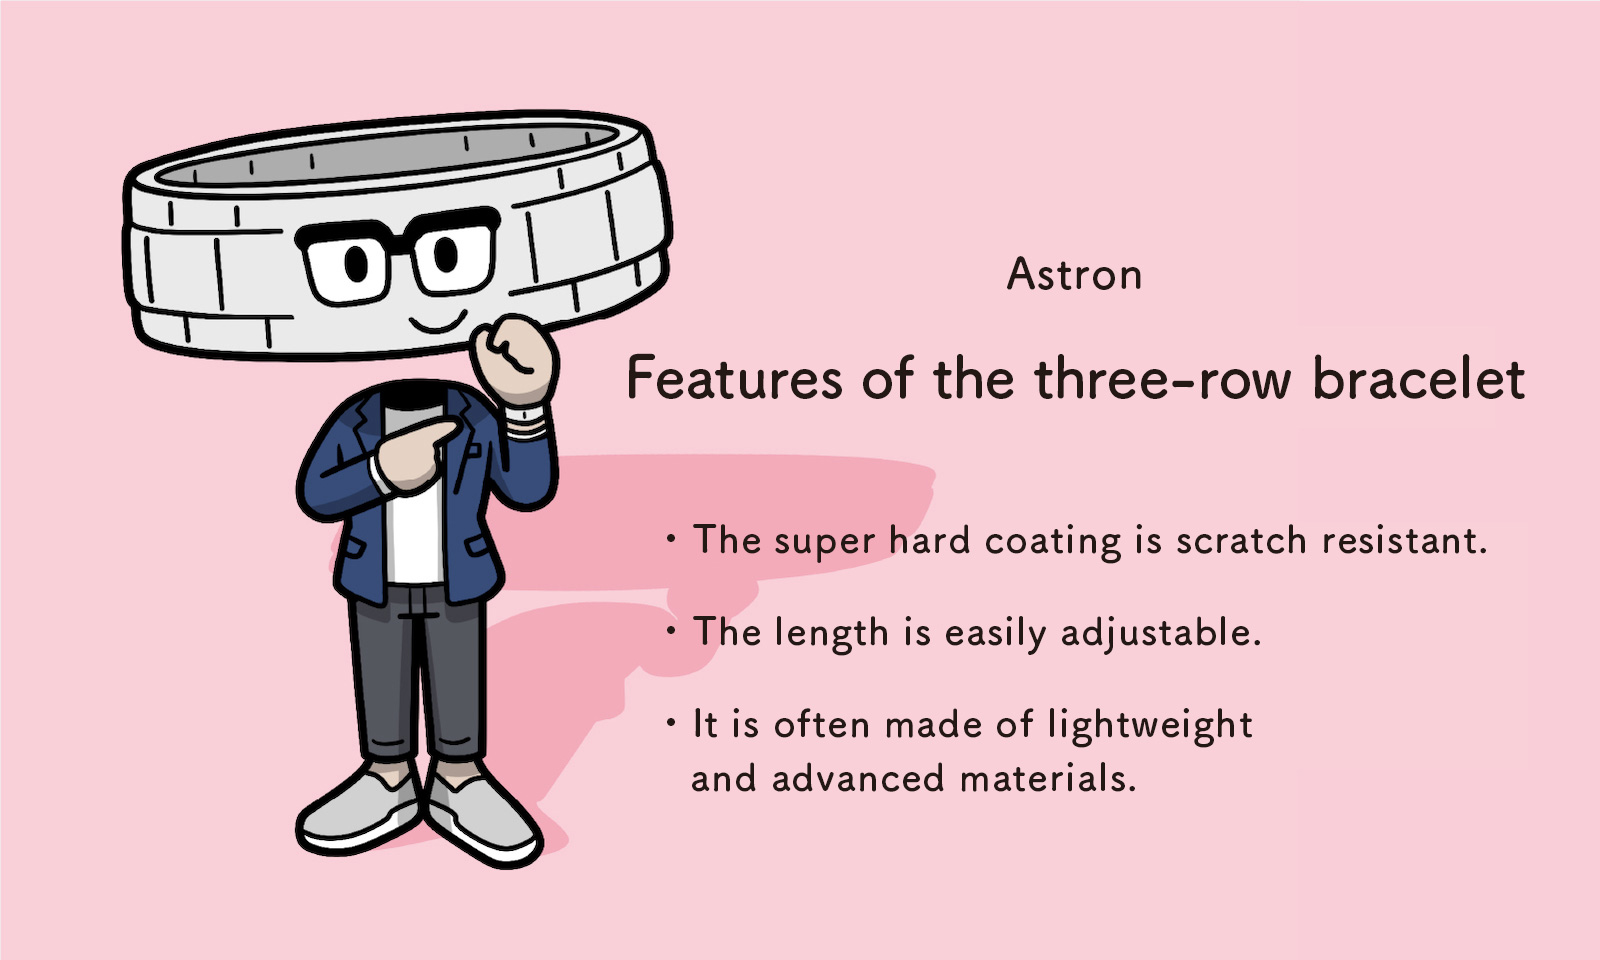 Astron: Features of the three-row bracelet - The super hard coating is scratch resistant. - The length is easily adjustable. - It is often made of lightweight and advanced materials.